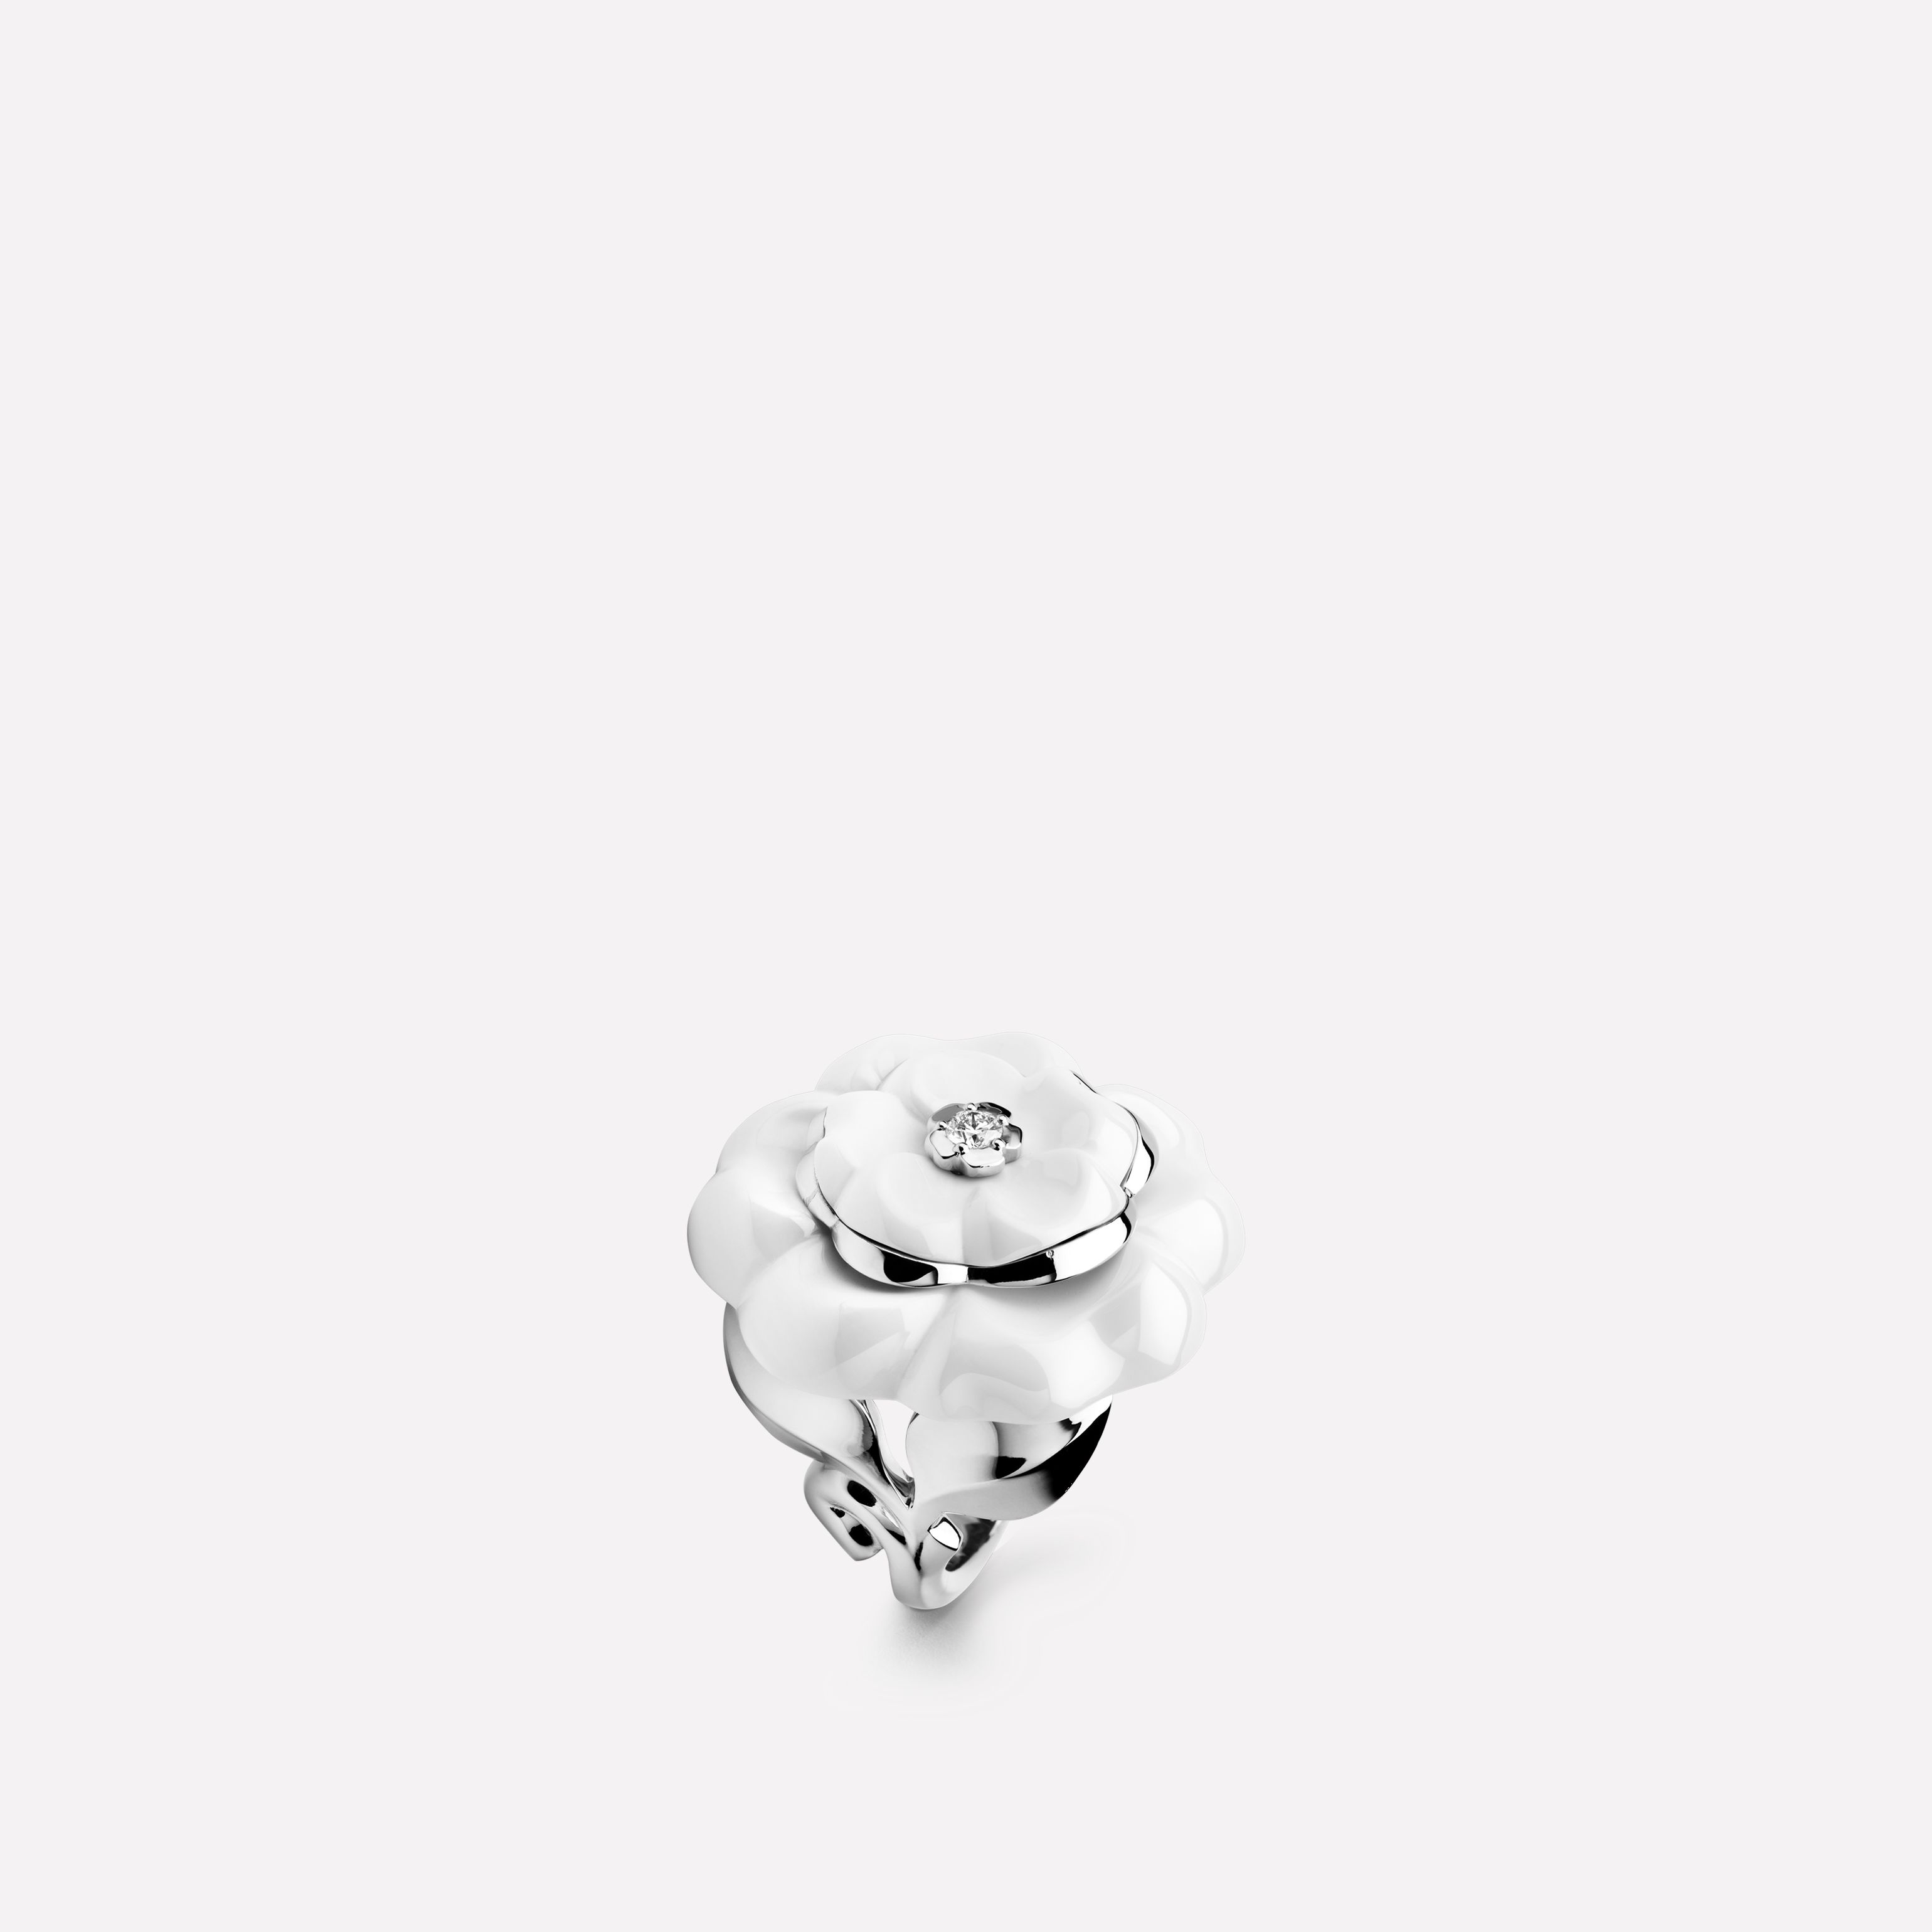 Chanel Camelia Galbe Ring Price